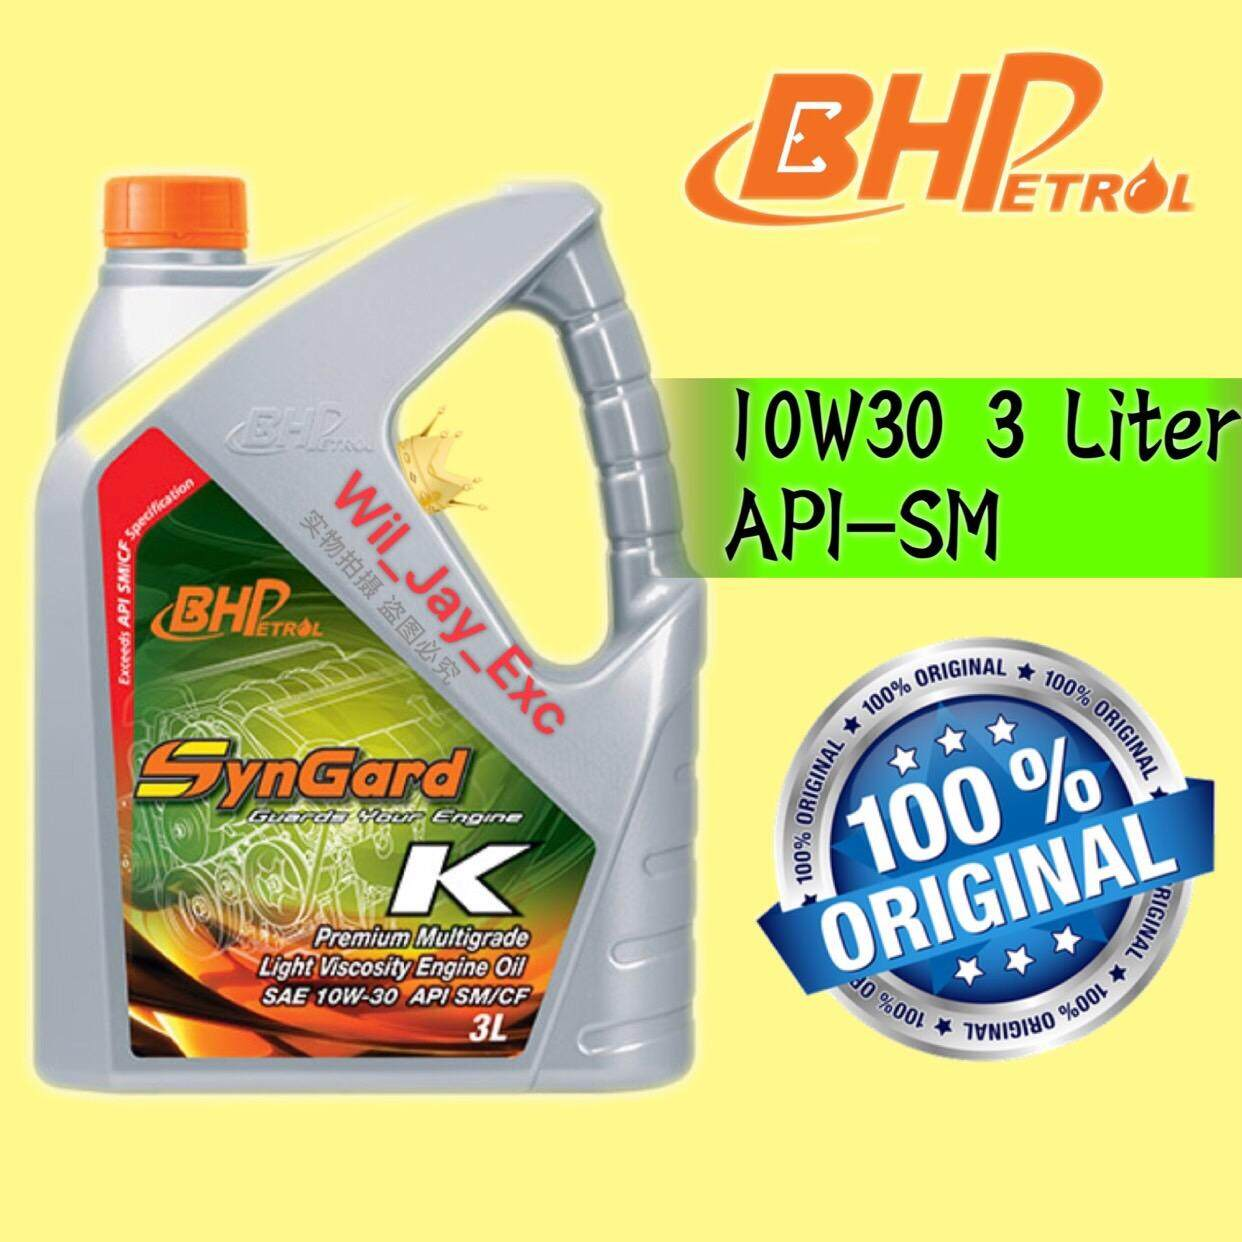 Bhp 10w30 3liter Engine Oil(syngard K) By Wil_jay_3143.